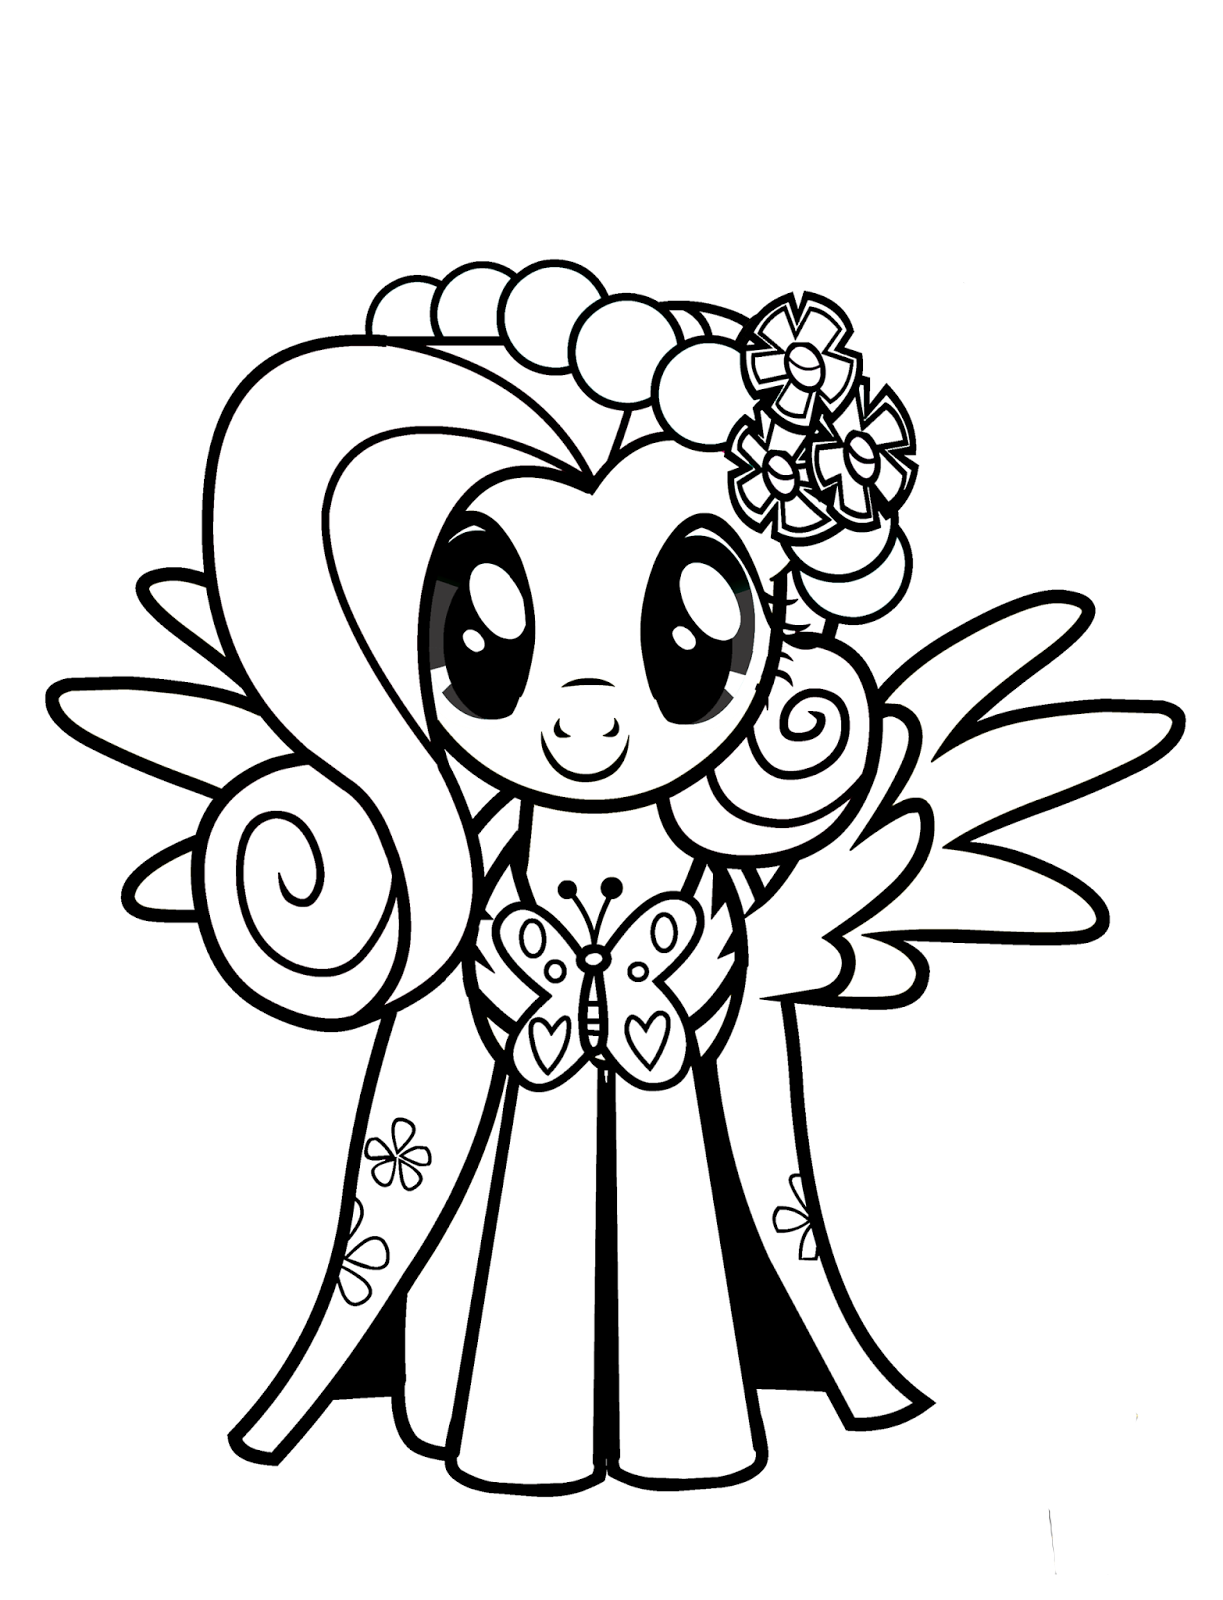 my little pony colouring pages to print fluttershy coloring pages best coloring pages for kids my print pony colouring little pages to